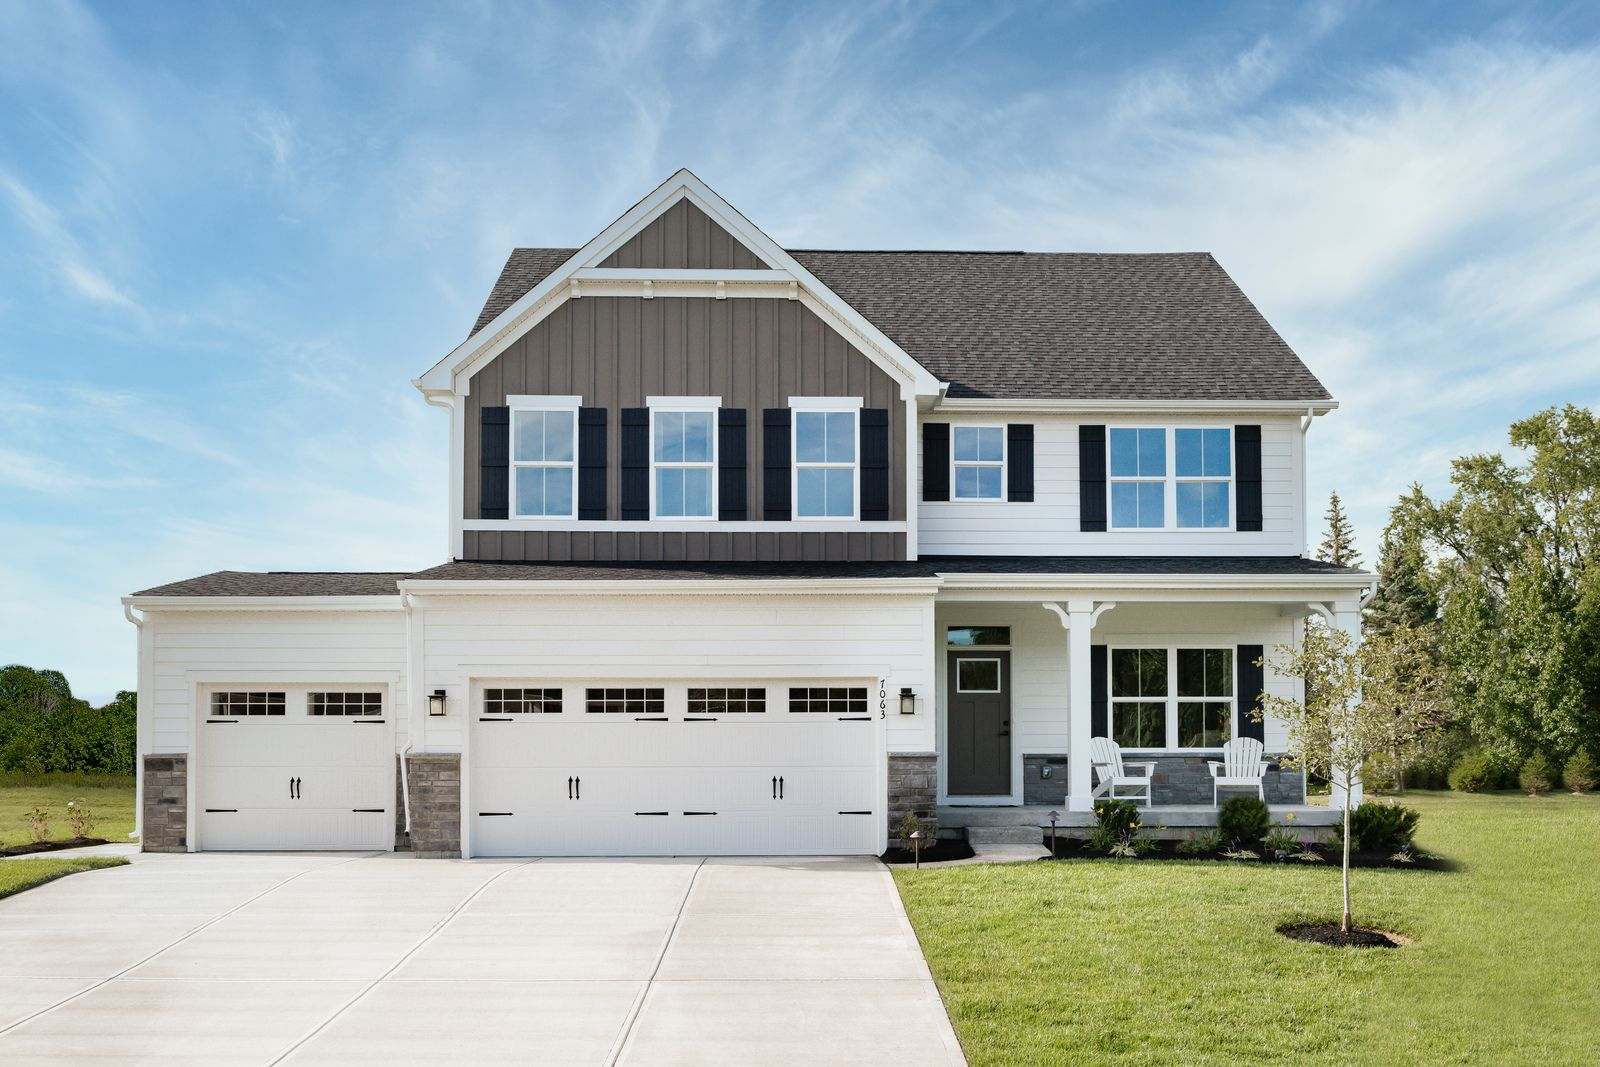 WESTOVER - COMING FALL 2021 FROM UPPER $400S:Spacious homesites with optional 3-car garages tucked away in a scenic Smyrna location minutes to everyday conveniences and easy access to Murfreesboro and Williamson County.Join the VIP list today!